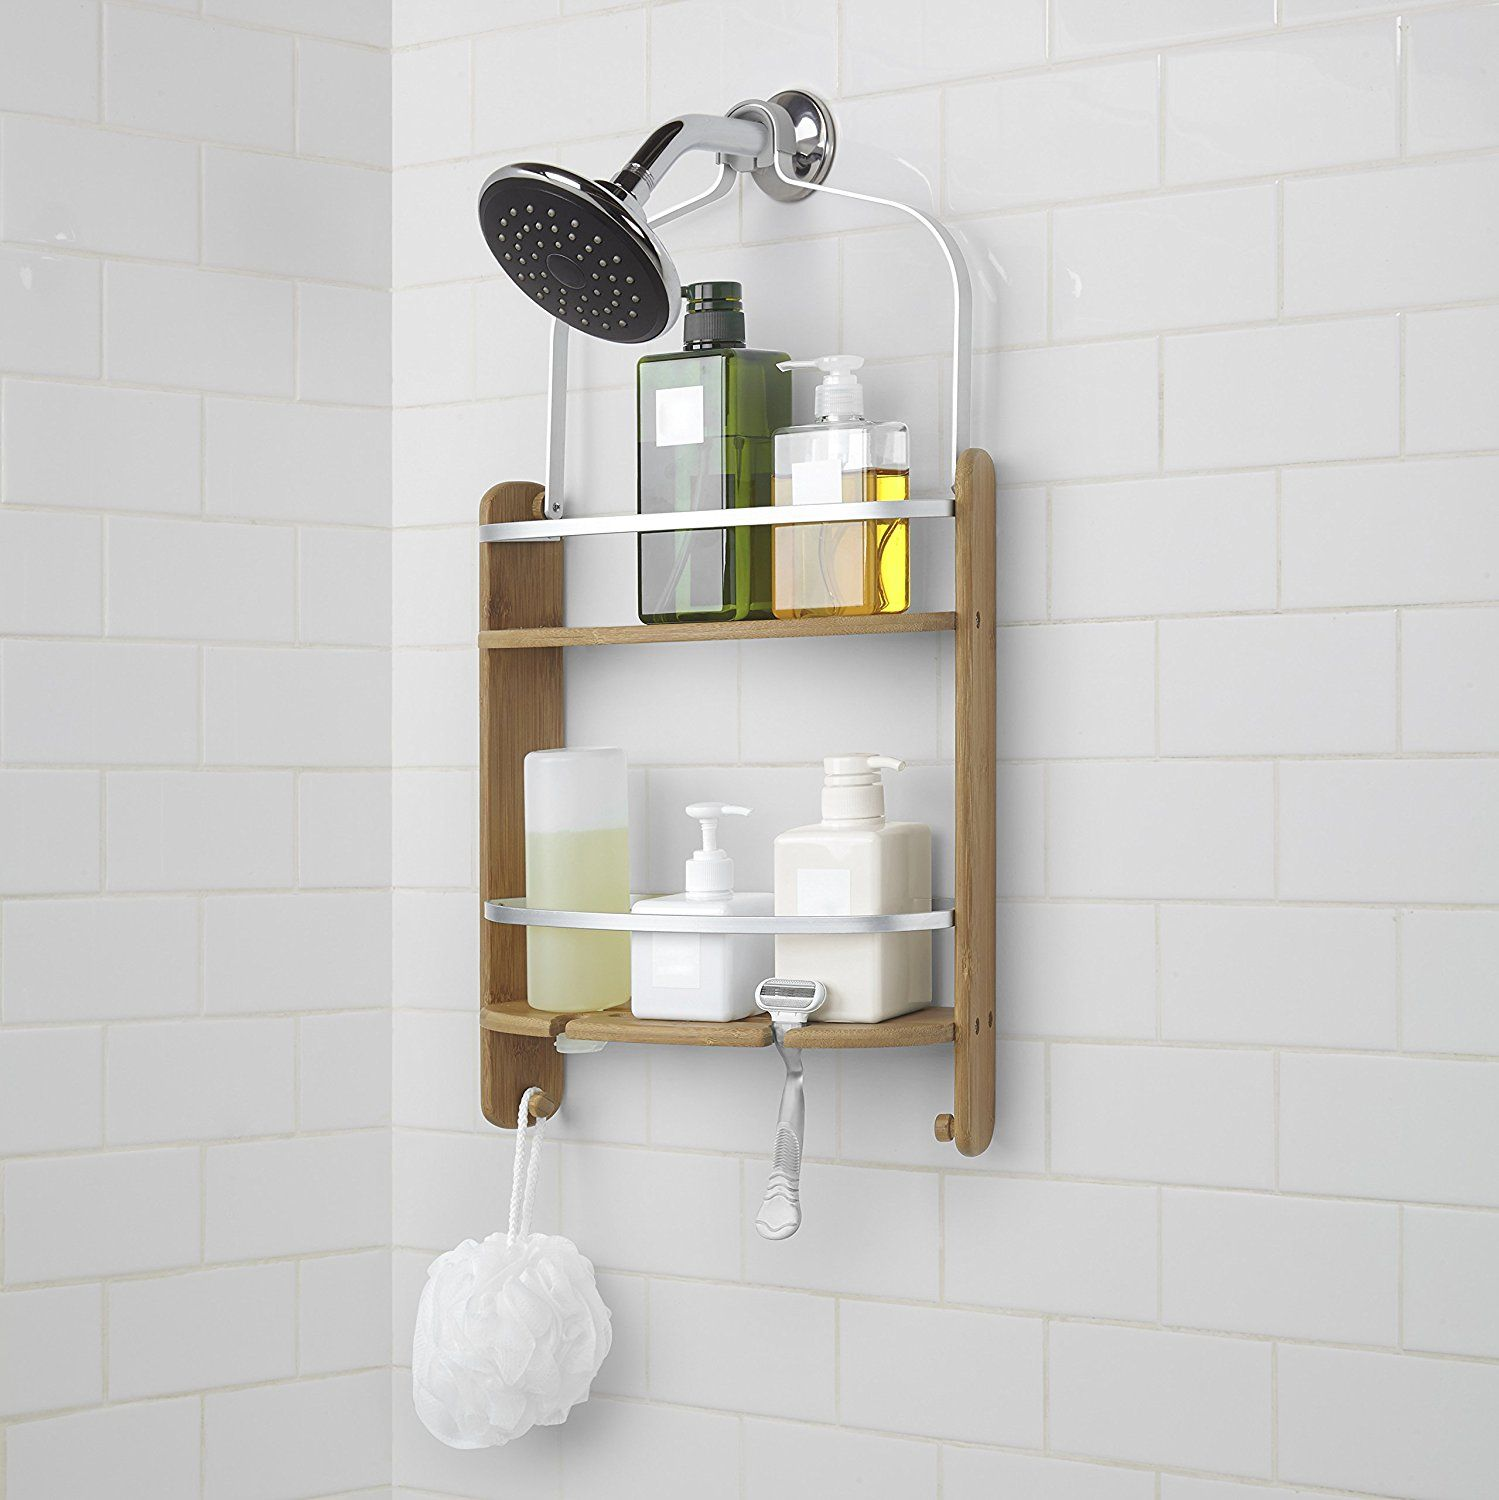 Amazon.com: Umbra Barrel Shower Caddy: Home & Kitchen | Master Bath ...